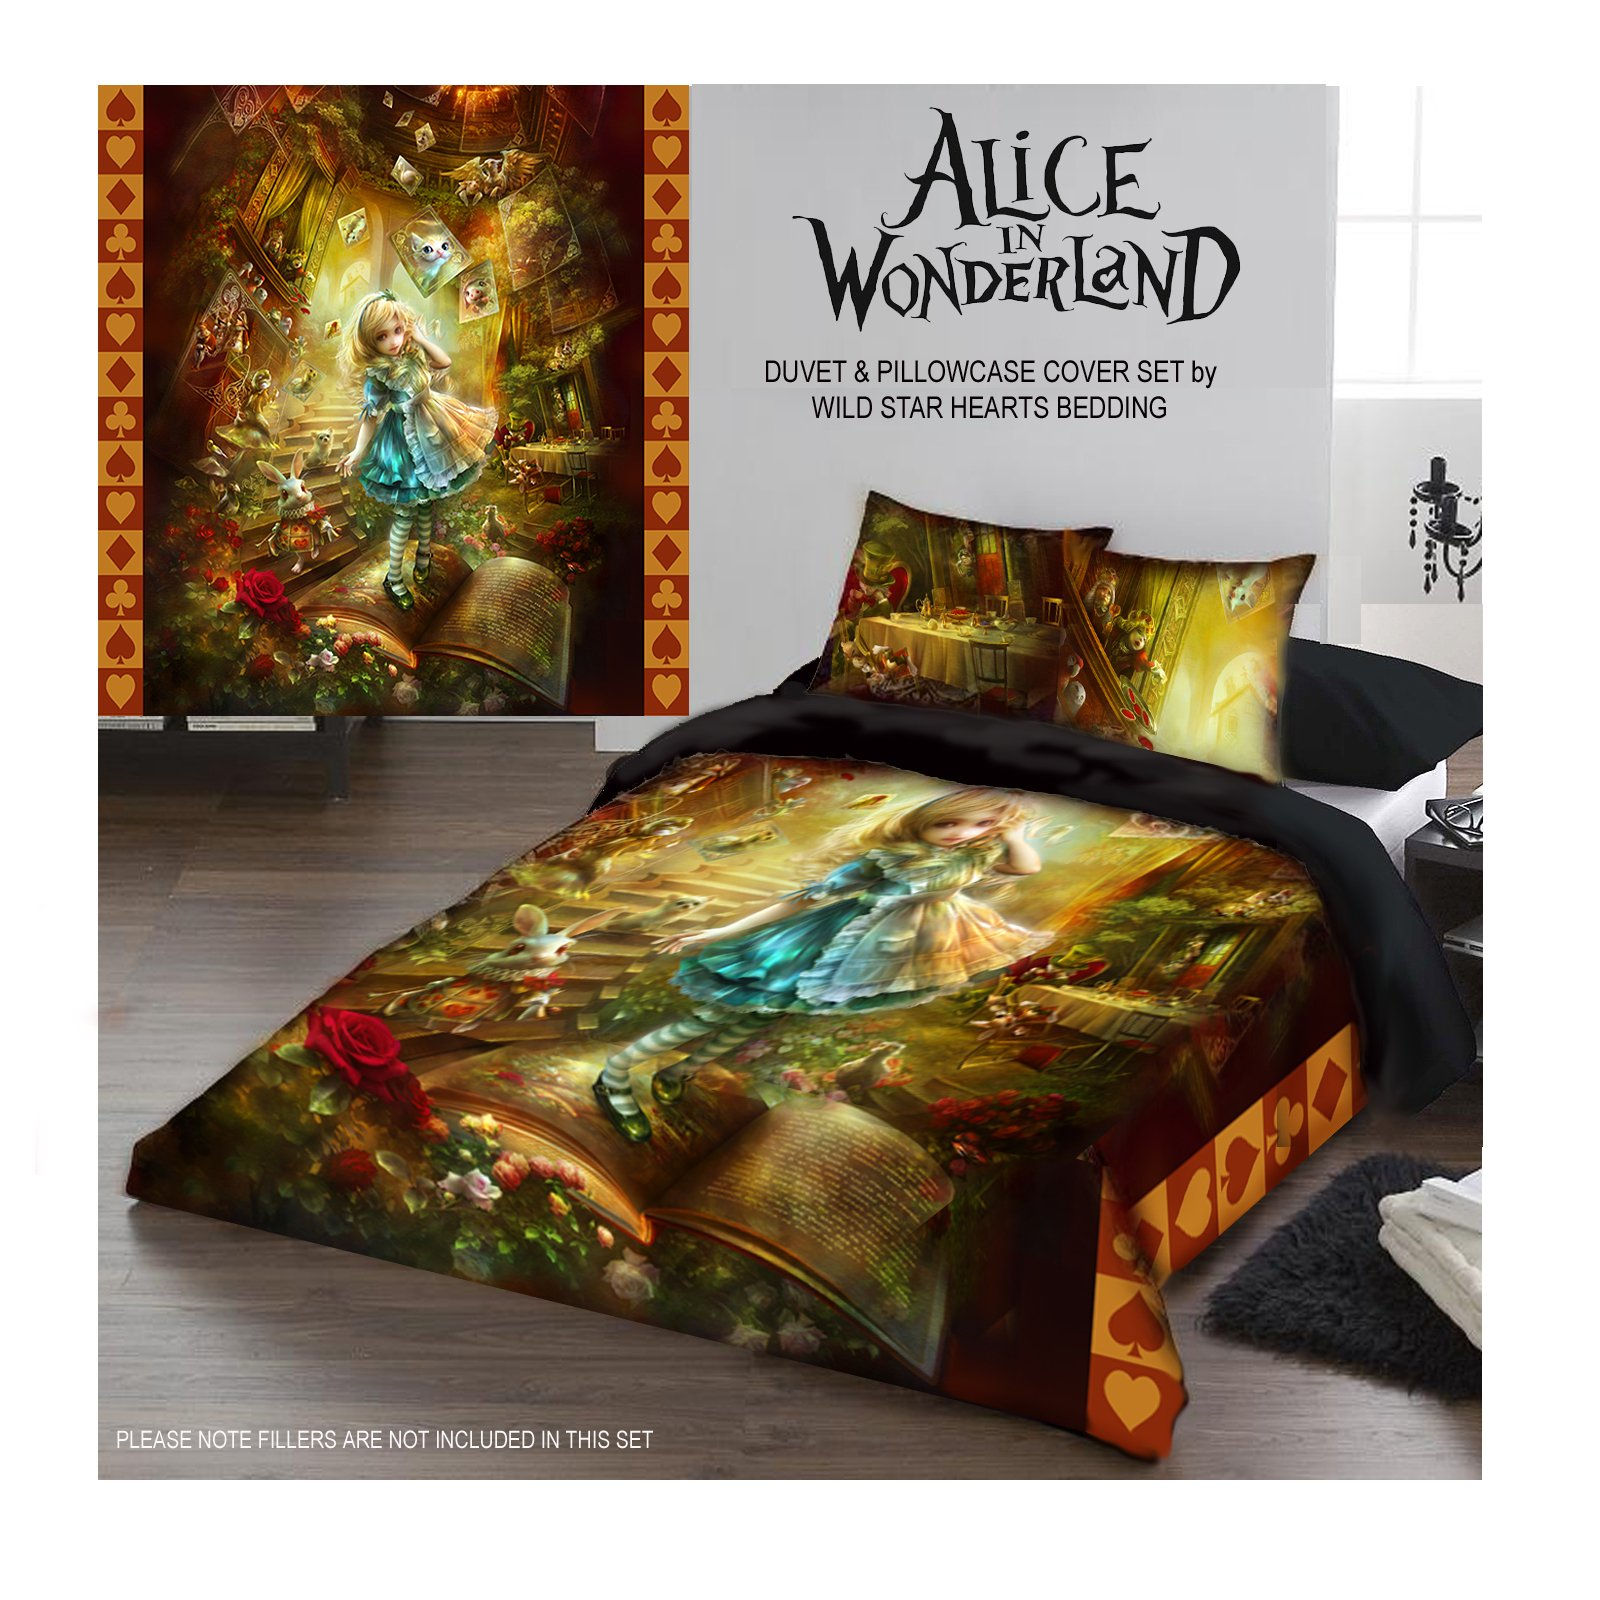 ALICE IN WONDERLAND Duvet & Pillows Case Covers Set for Queensize Bed by Wild Star Home